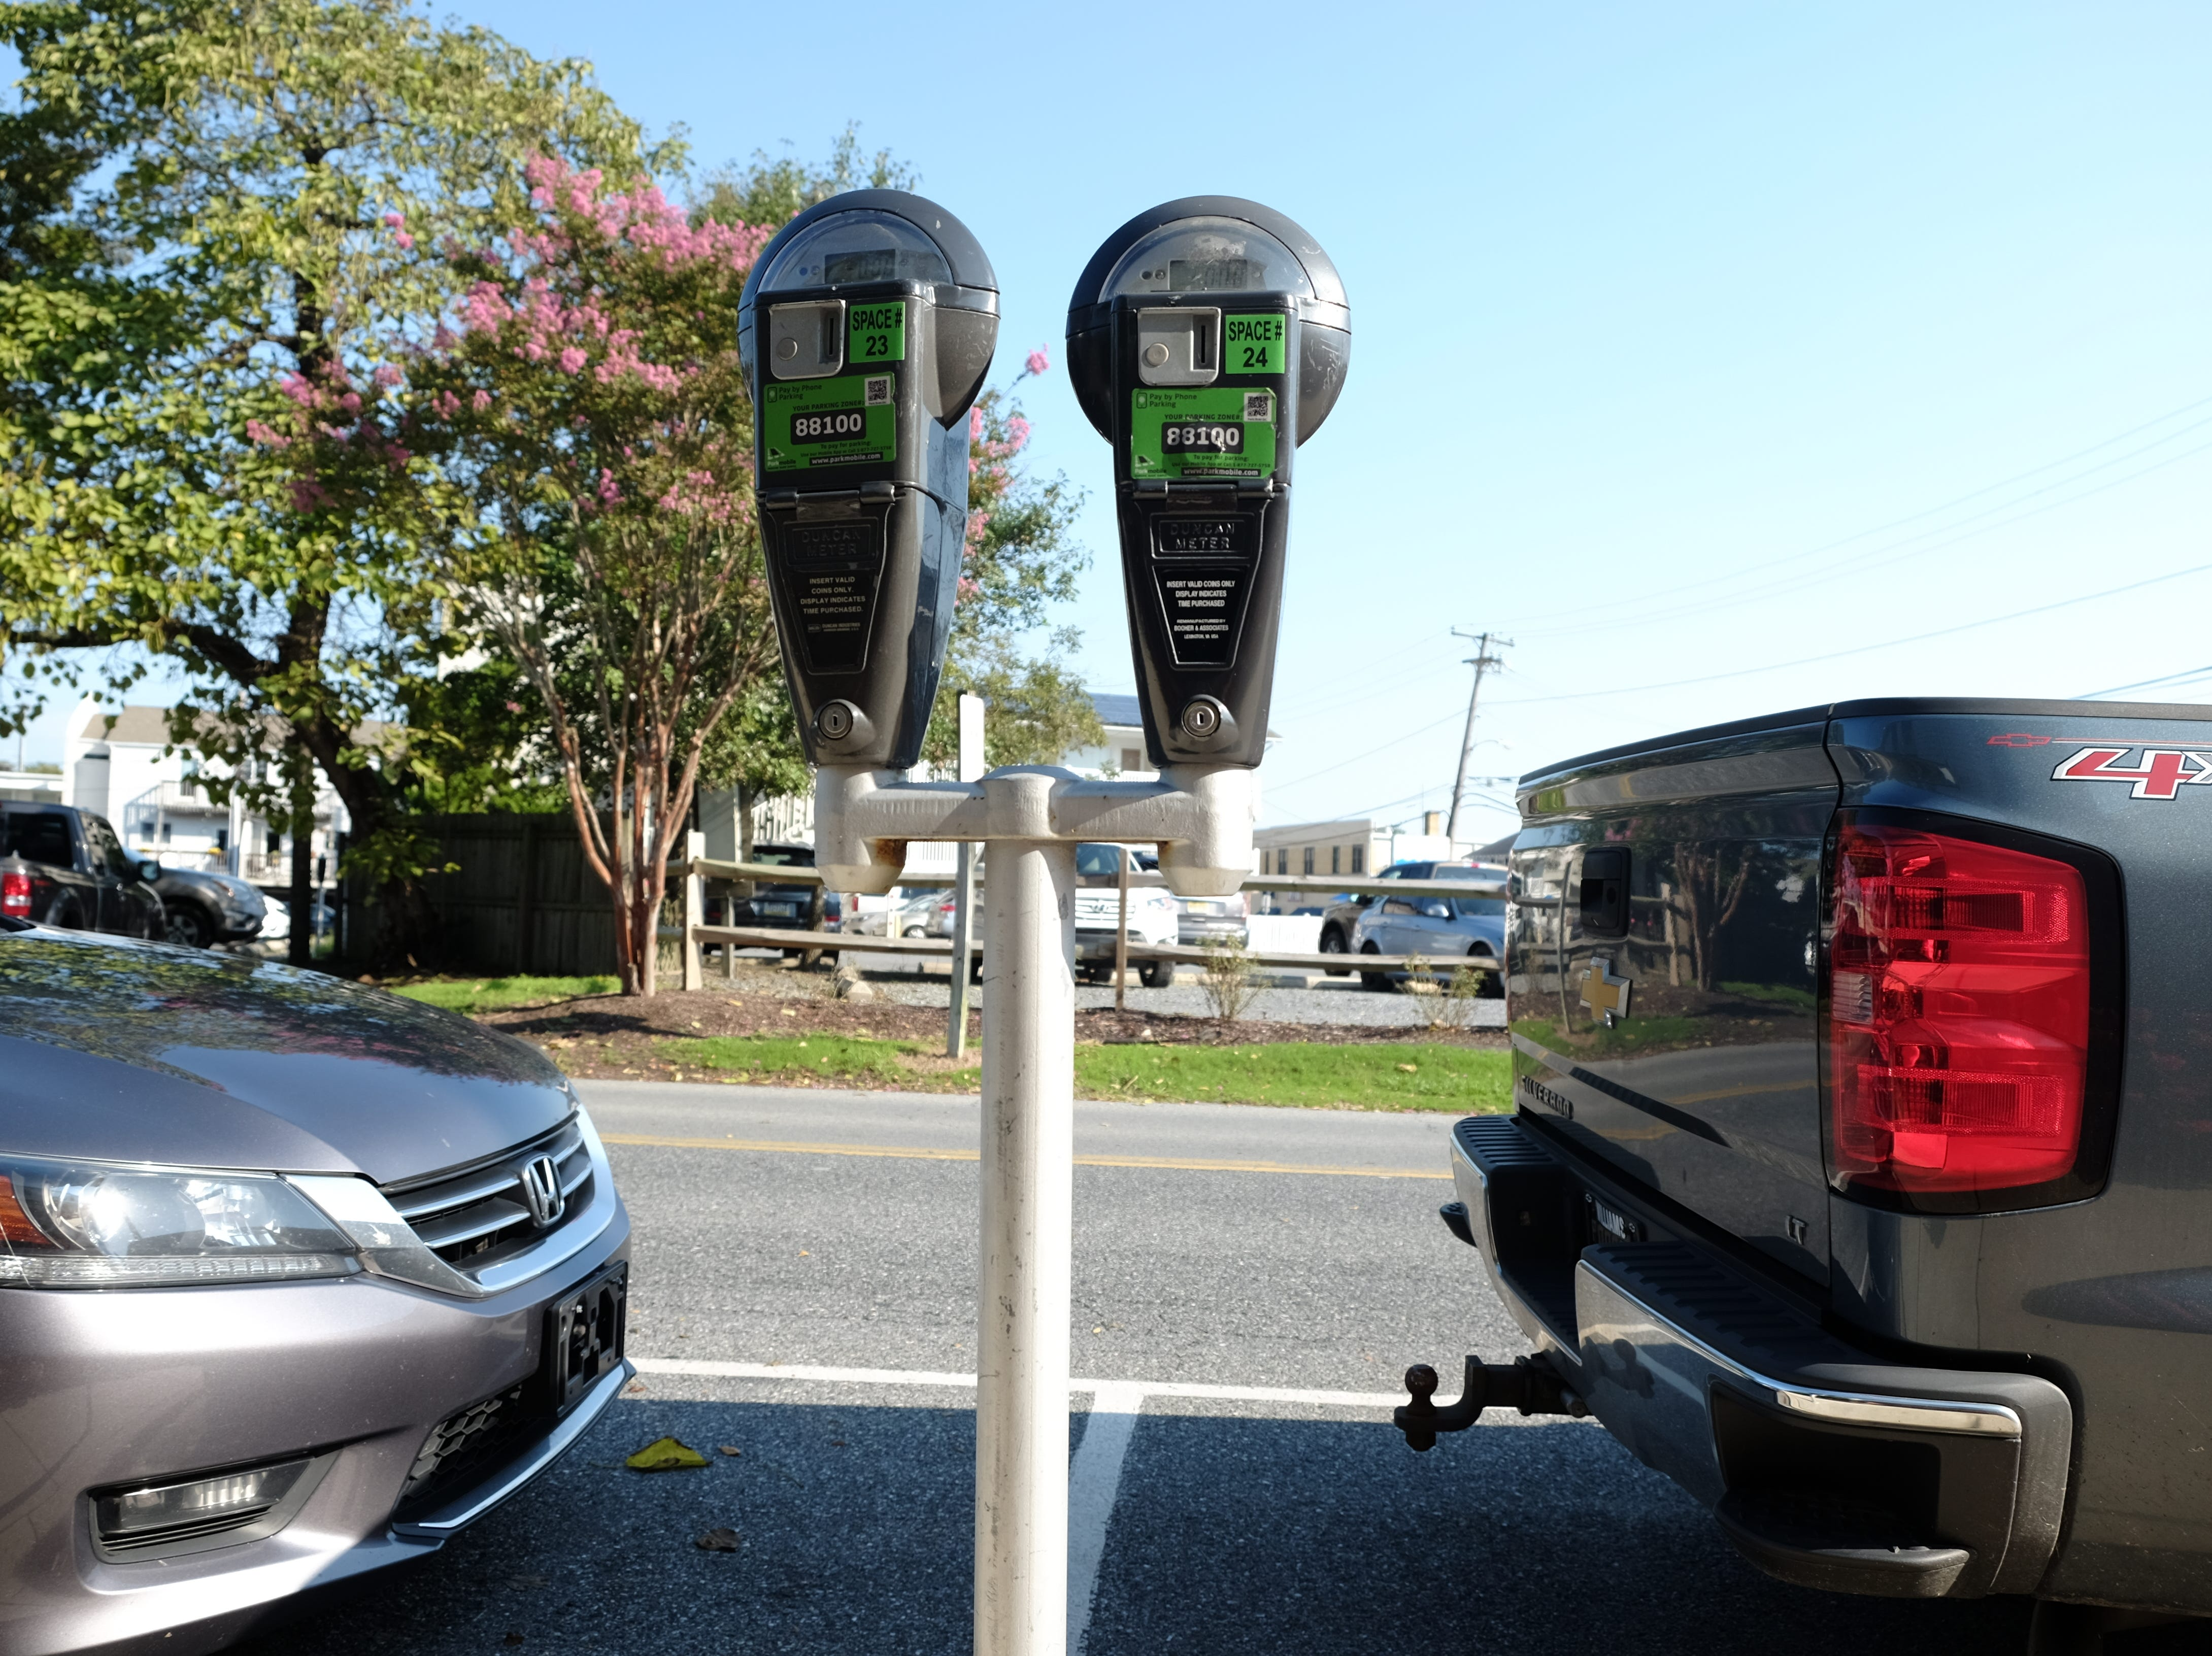 Rehoboth Beach parking - a crisis that no app can yet conquer